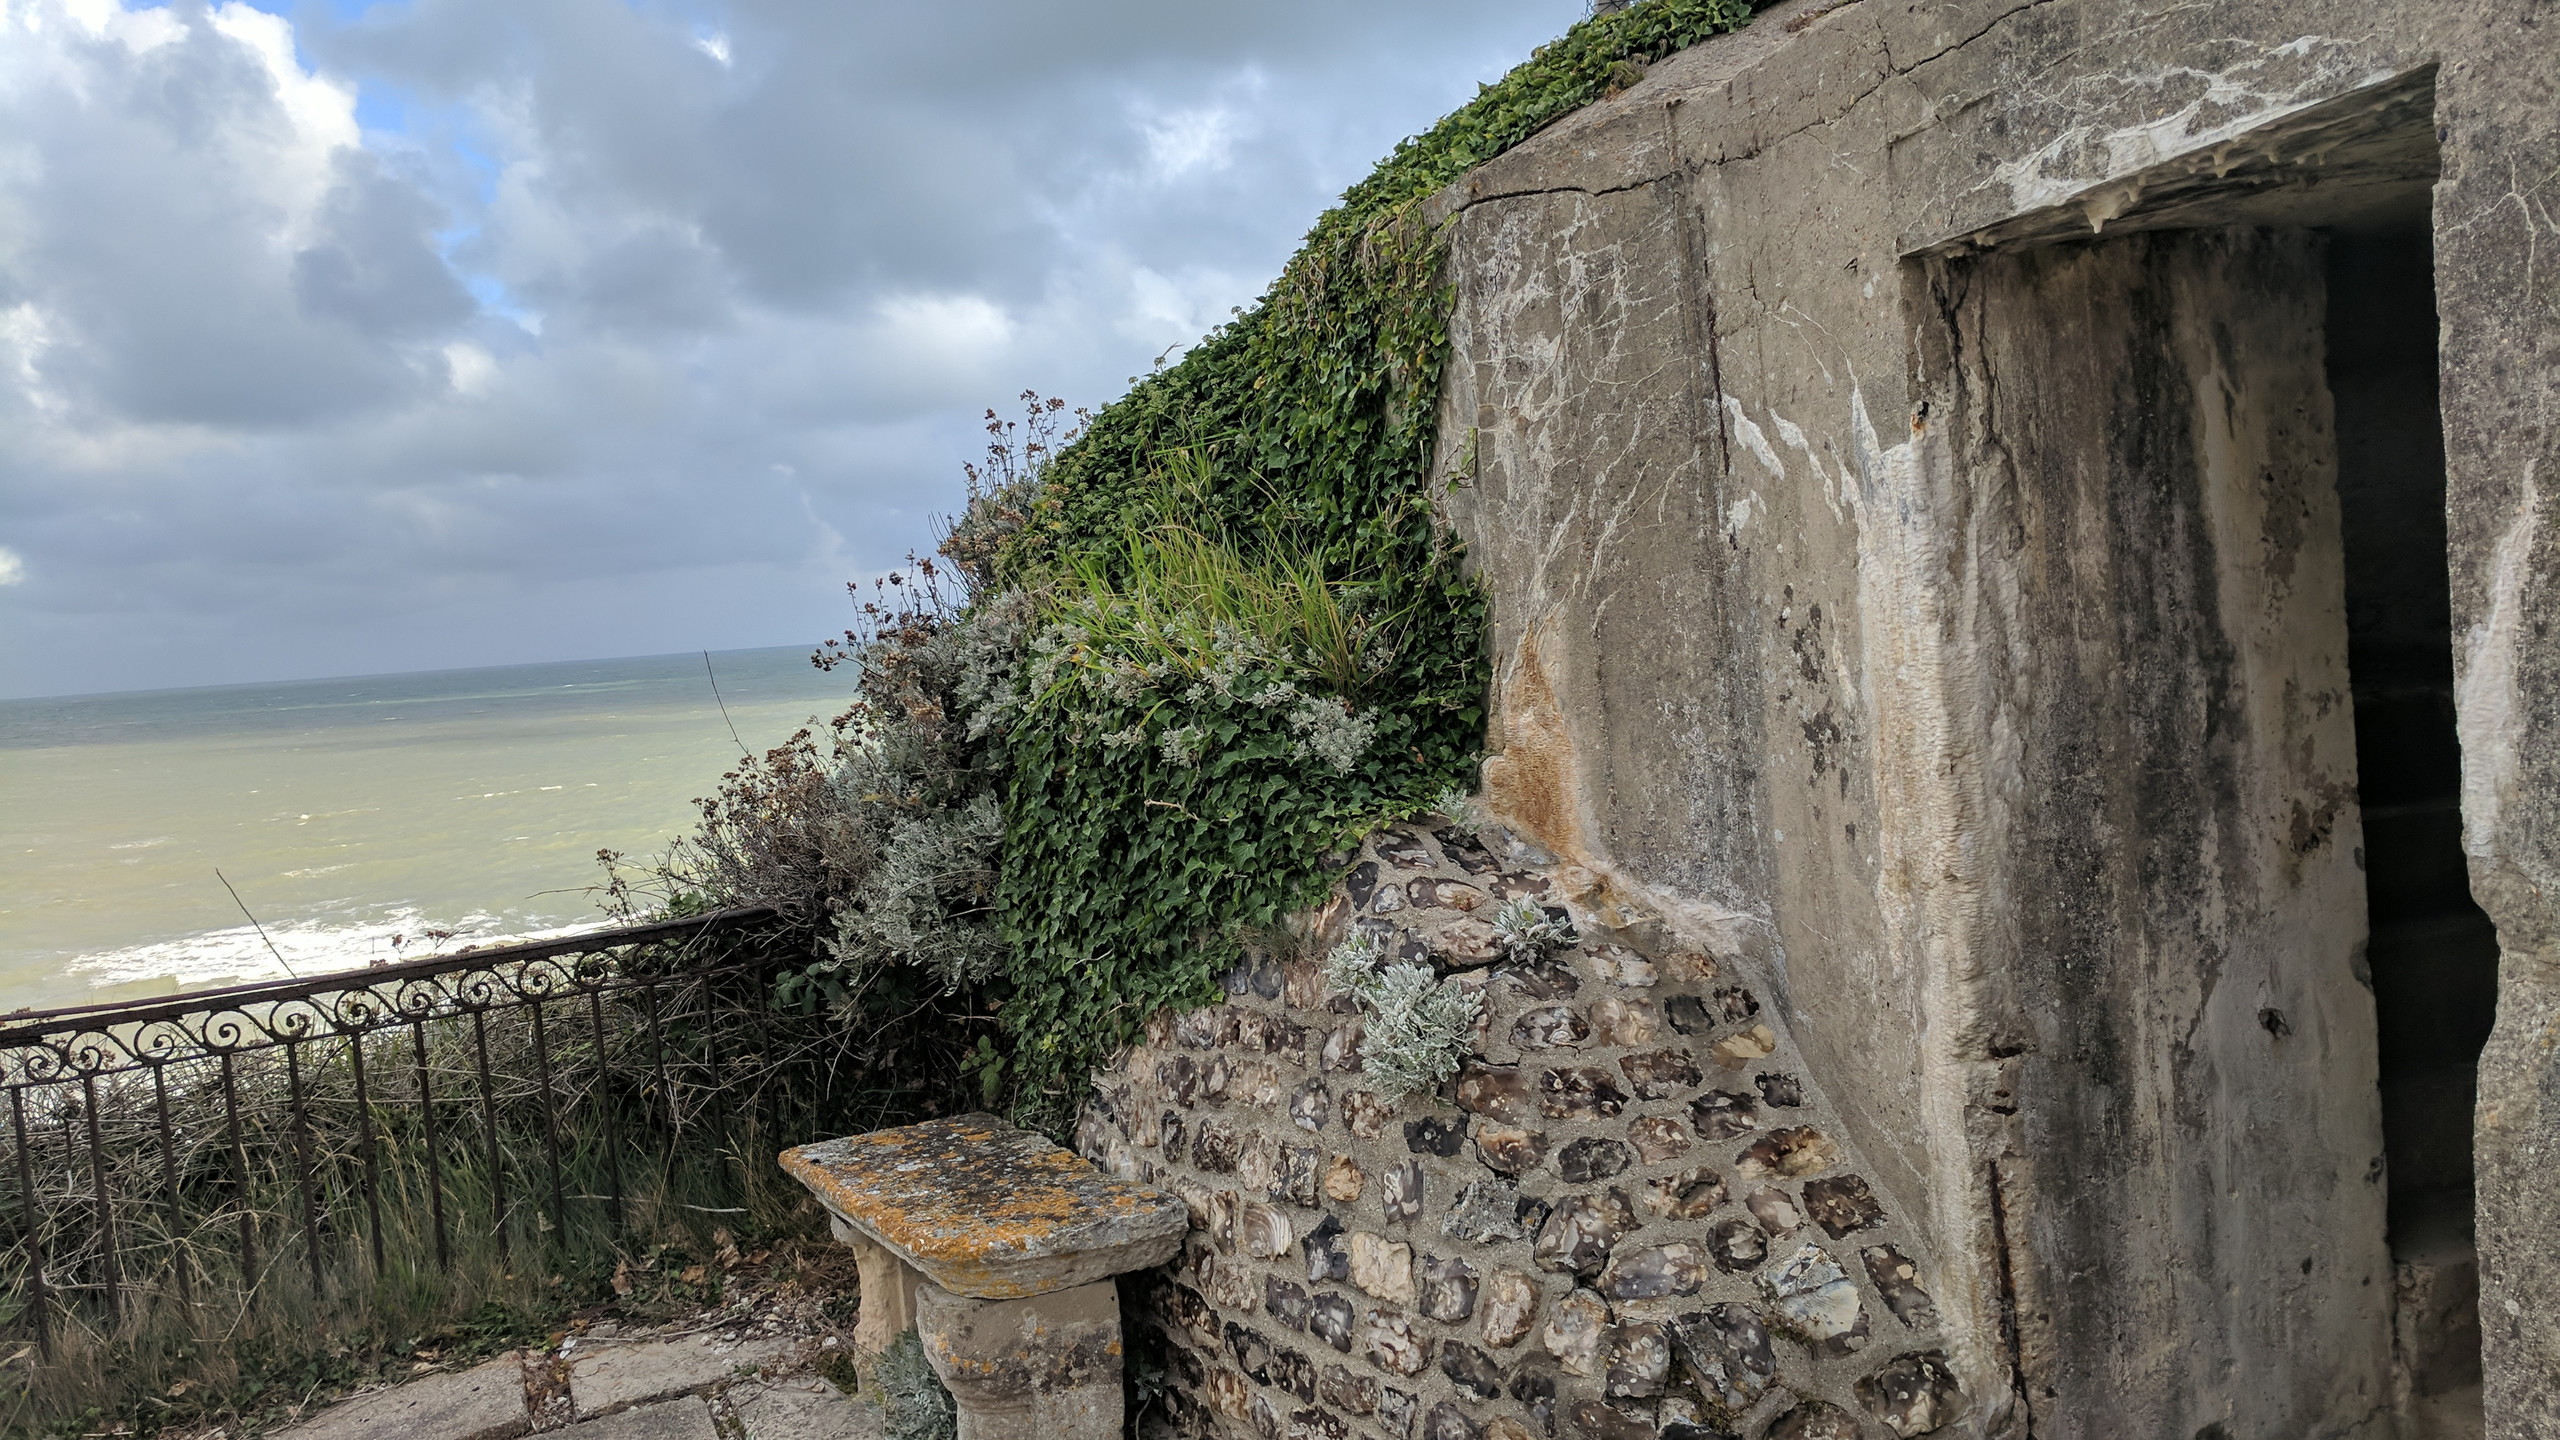 """""""Well, it's not going anywhere - so it's now the garden shed."""" - This summer, the wonderful Bonnet family showed us around their formidable, and fascinating home along the coast in Puys, France."""